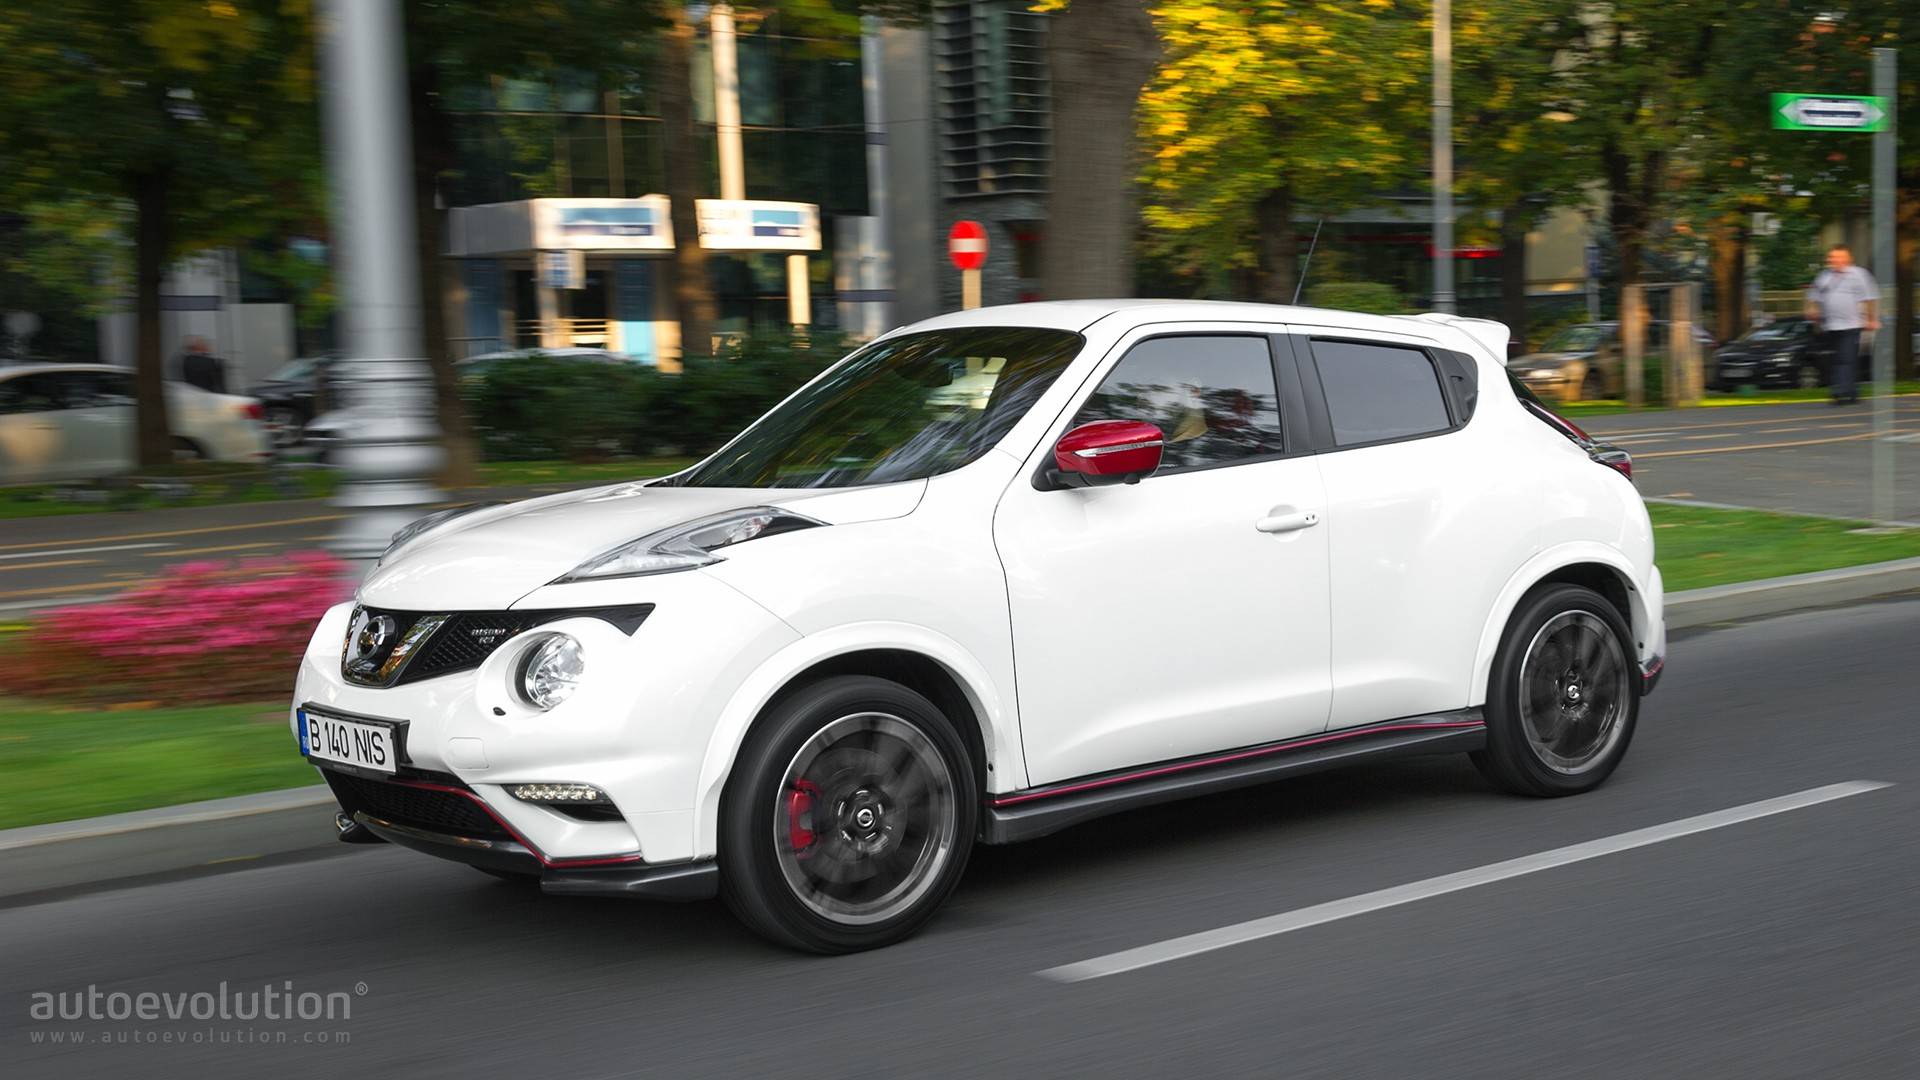 nissan juke r engine nissan free engine image for user manual download. Black Bedroom Furniture Sets. Home Design Ideas